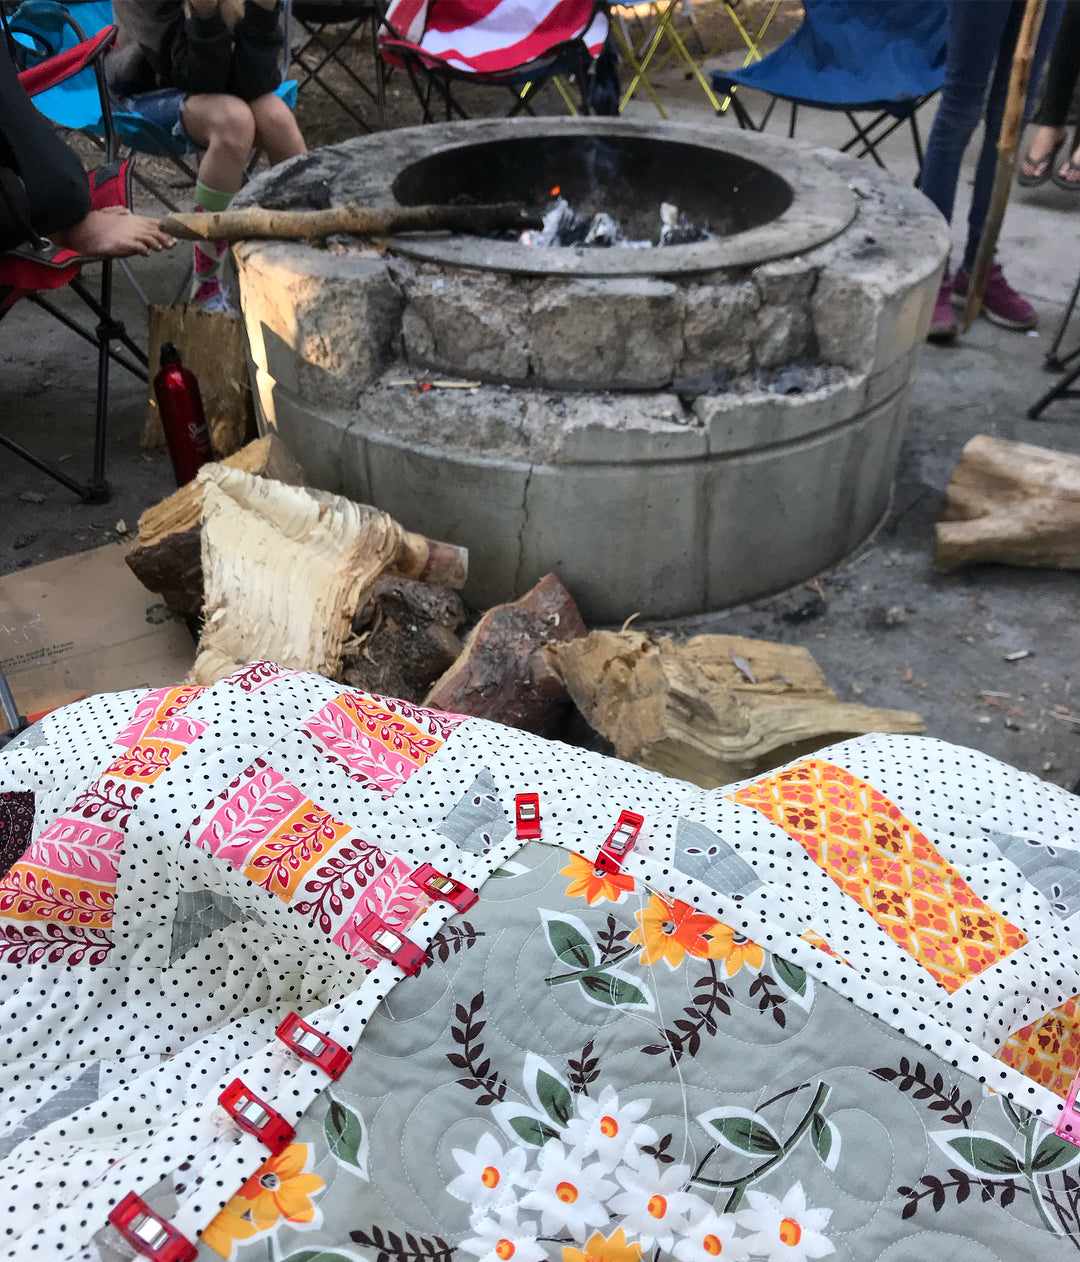 Binding by a campfire! Division quilt by Maker Valley. Quilt pattern by A Bright Corner (aka Andy Knowlton)